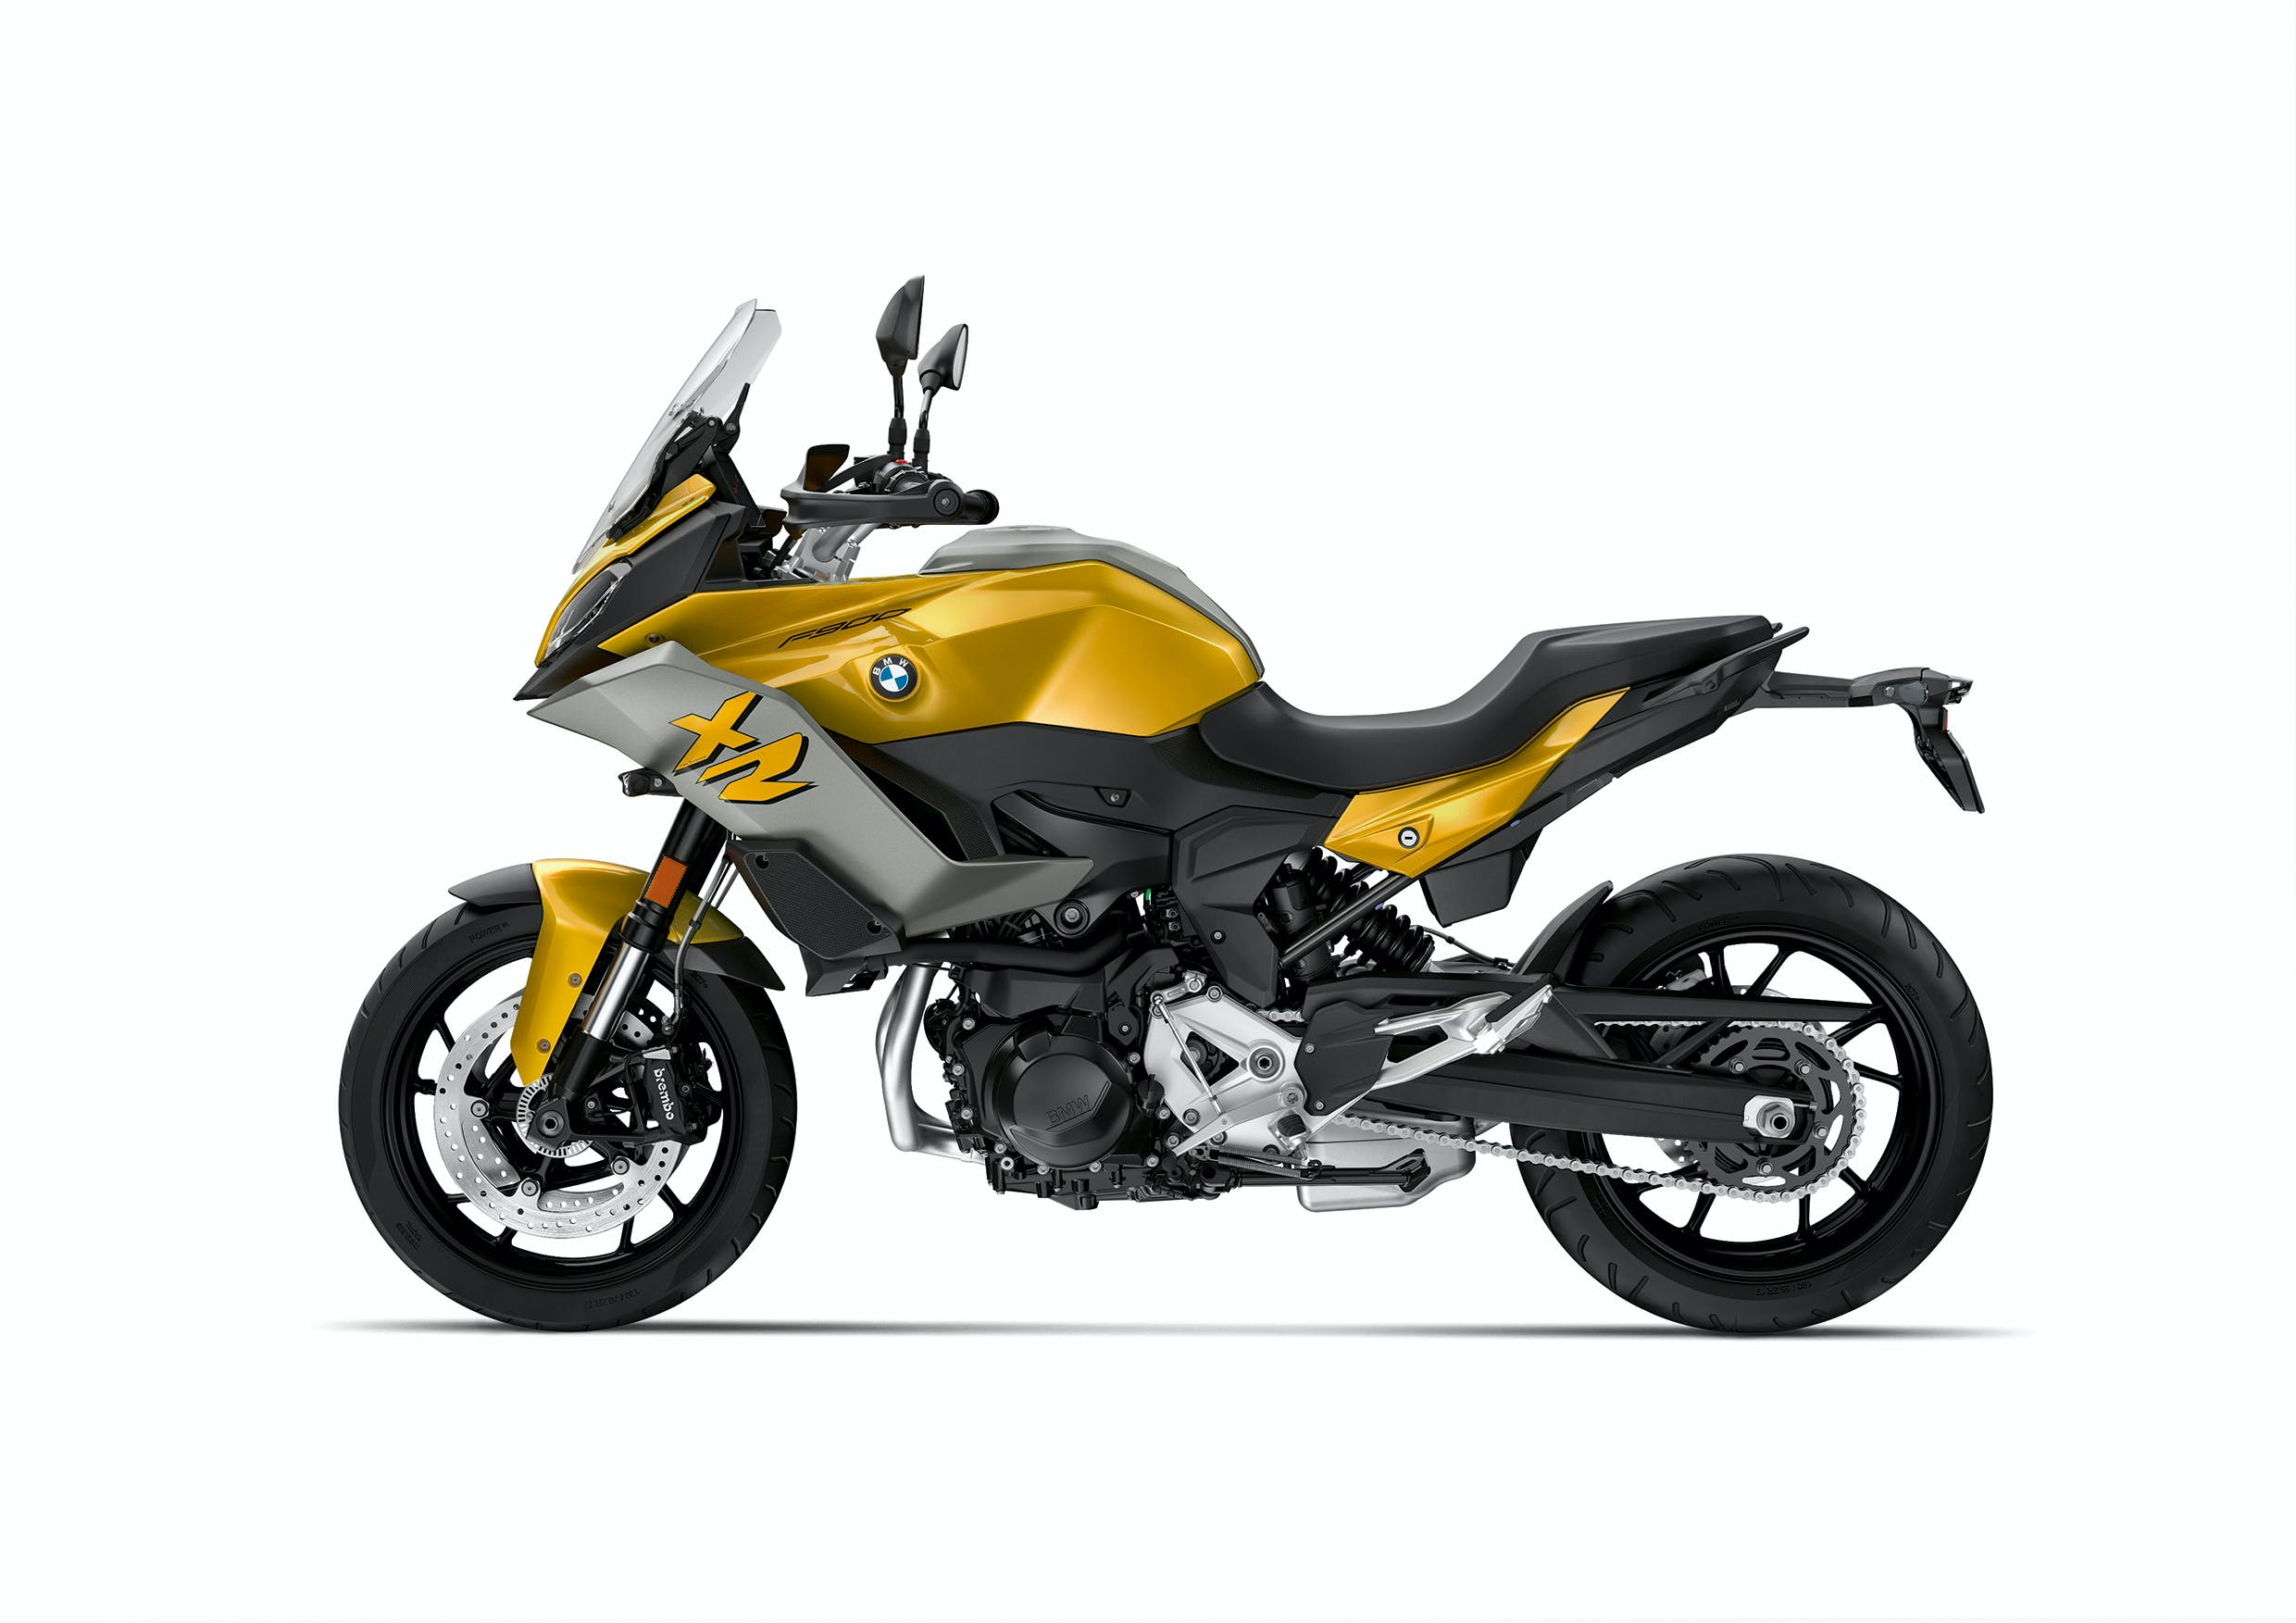 BMW F 900 XR in Exclusive Style - Galvanic Gold Metallic colour